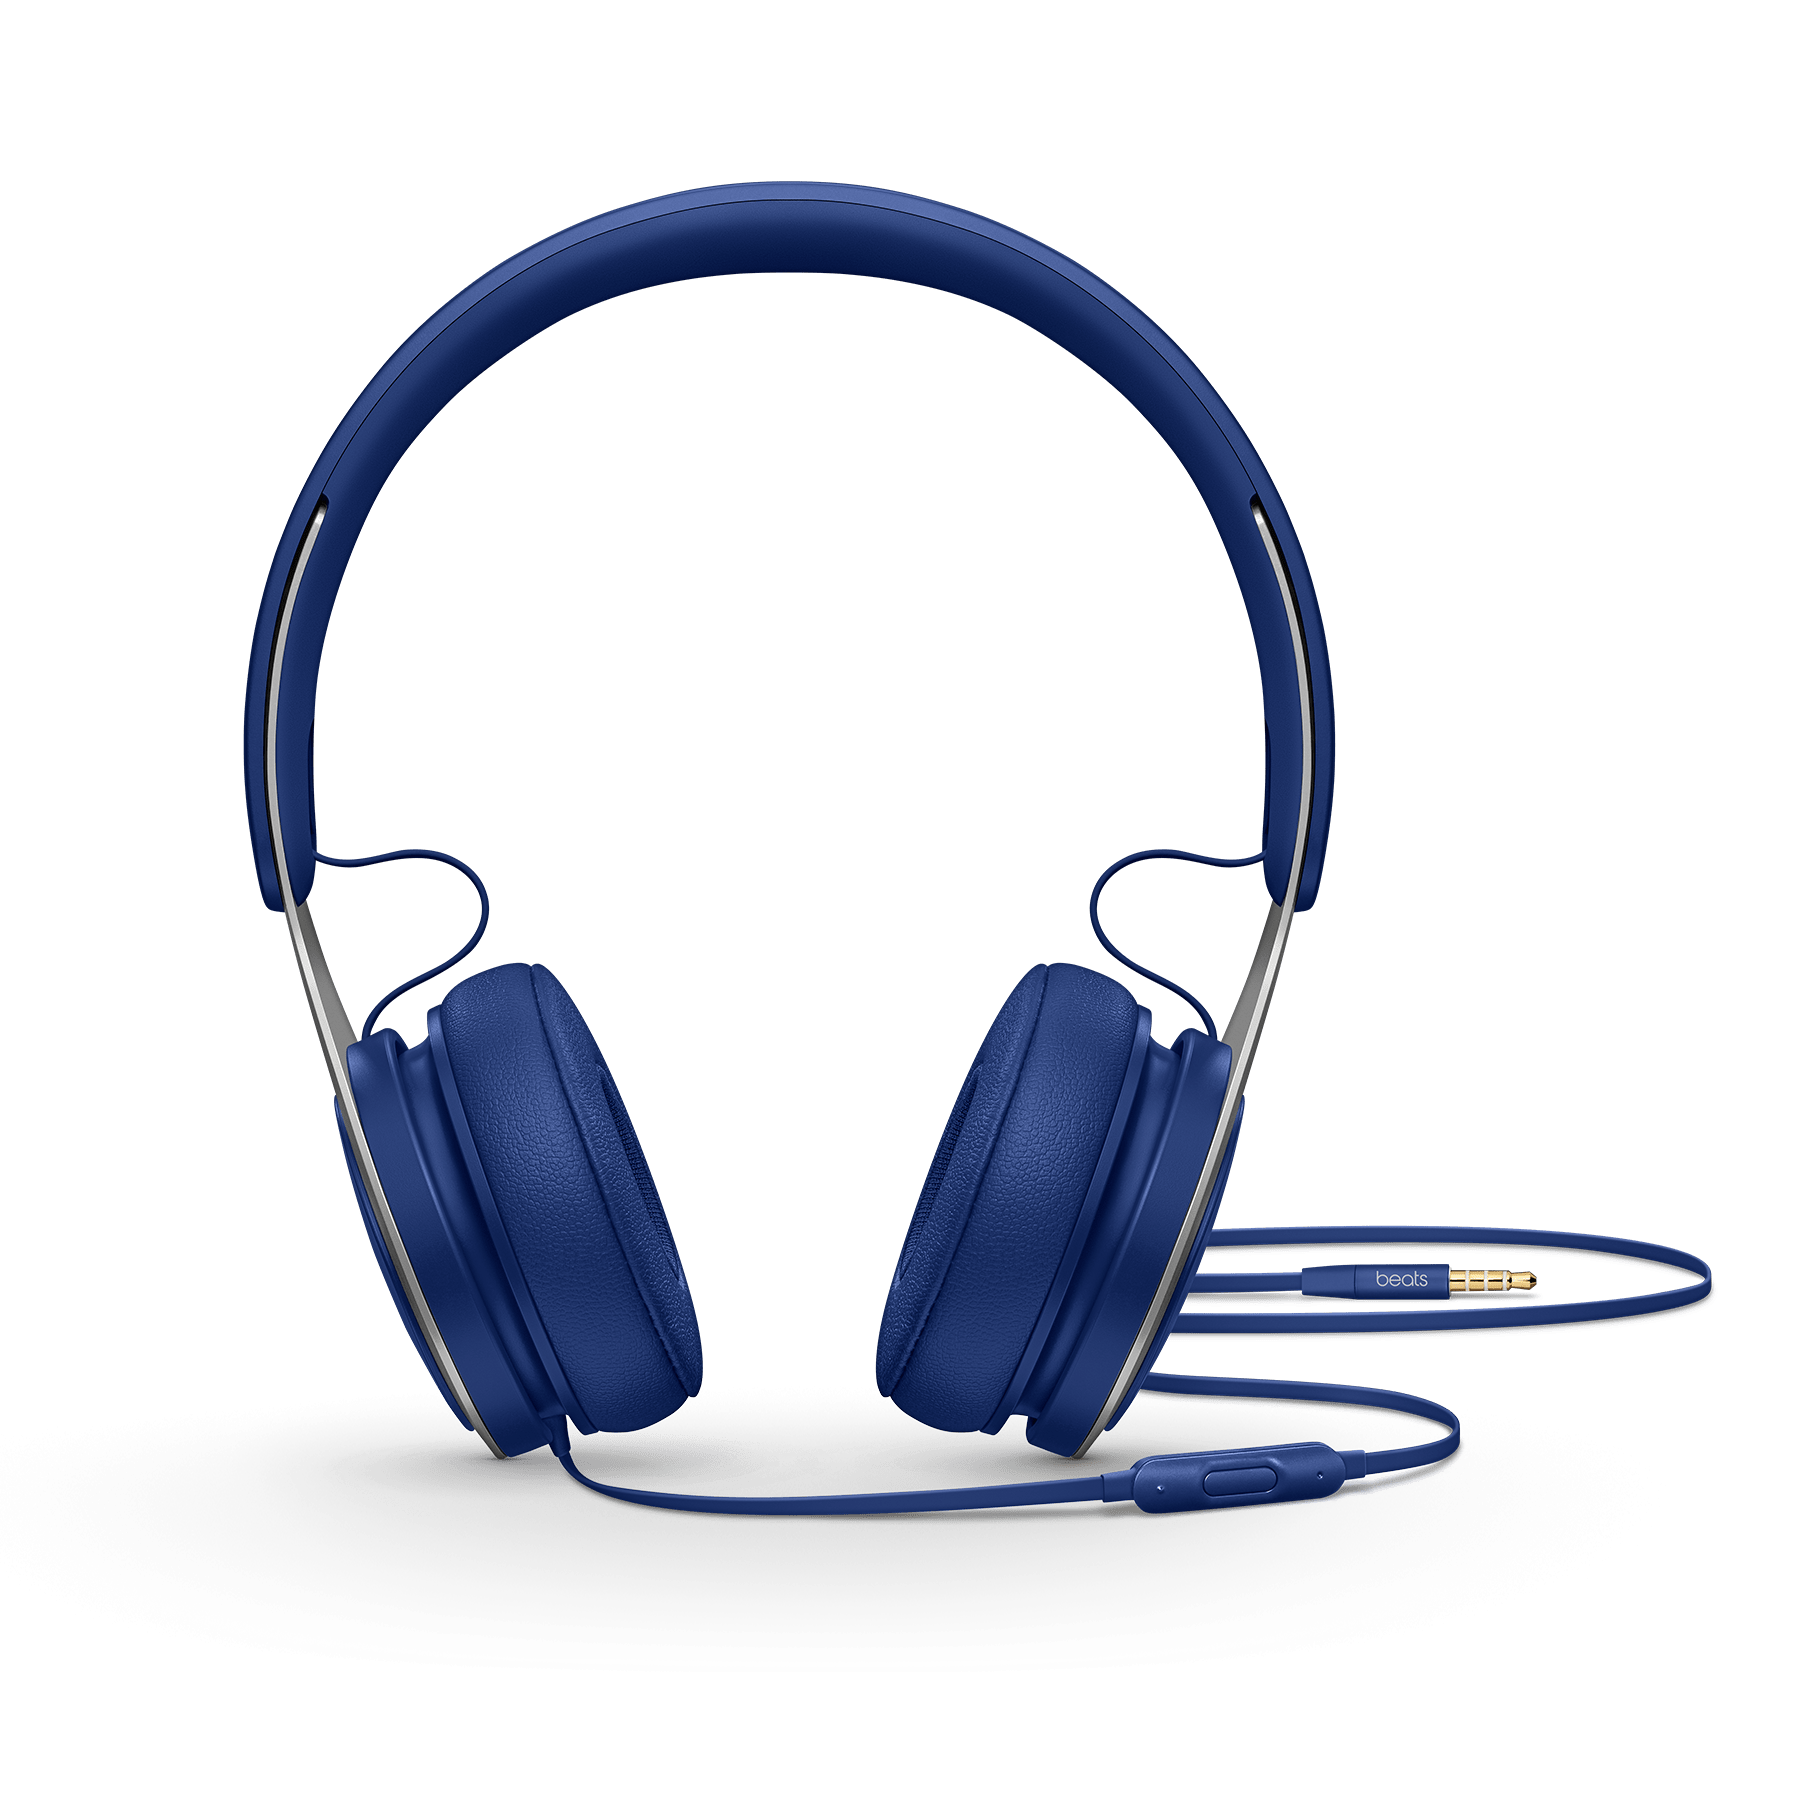 Headphones clipart dj headphone. Beats ep by dre